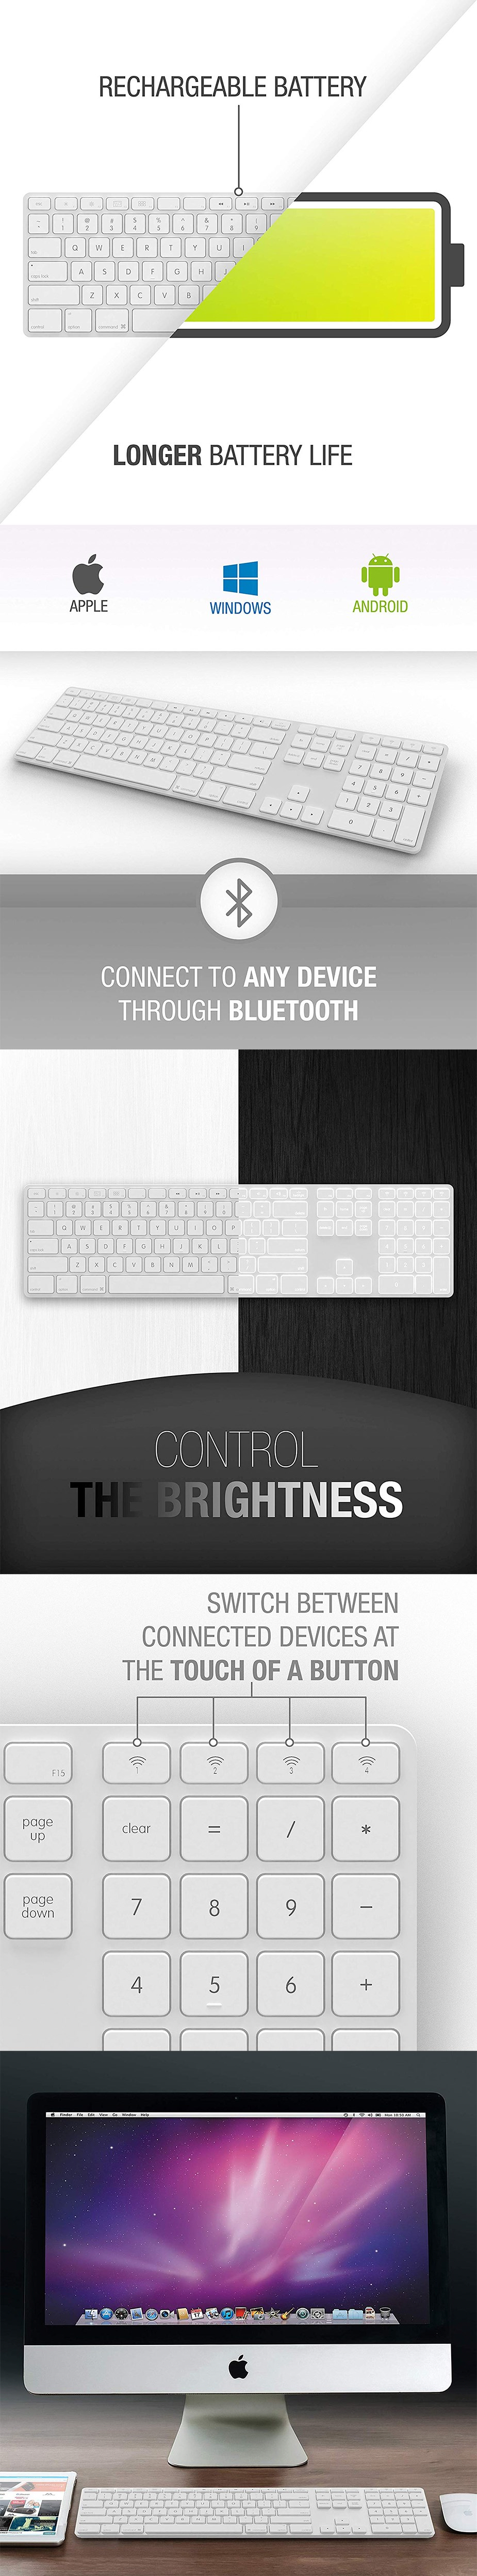 Matias FK418BTLW Wireless Aluminum Backlit Keyboard - White - Desktop Overview 1